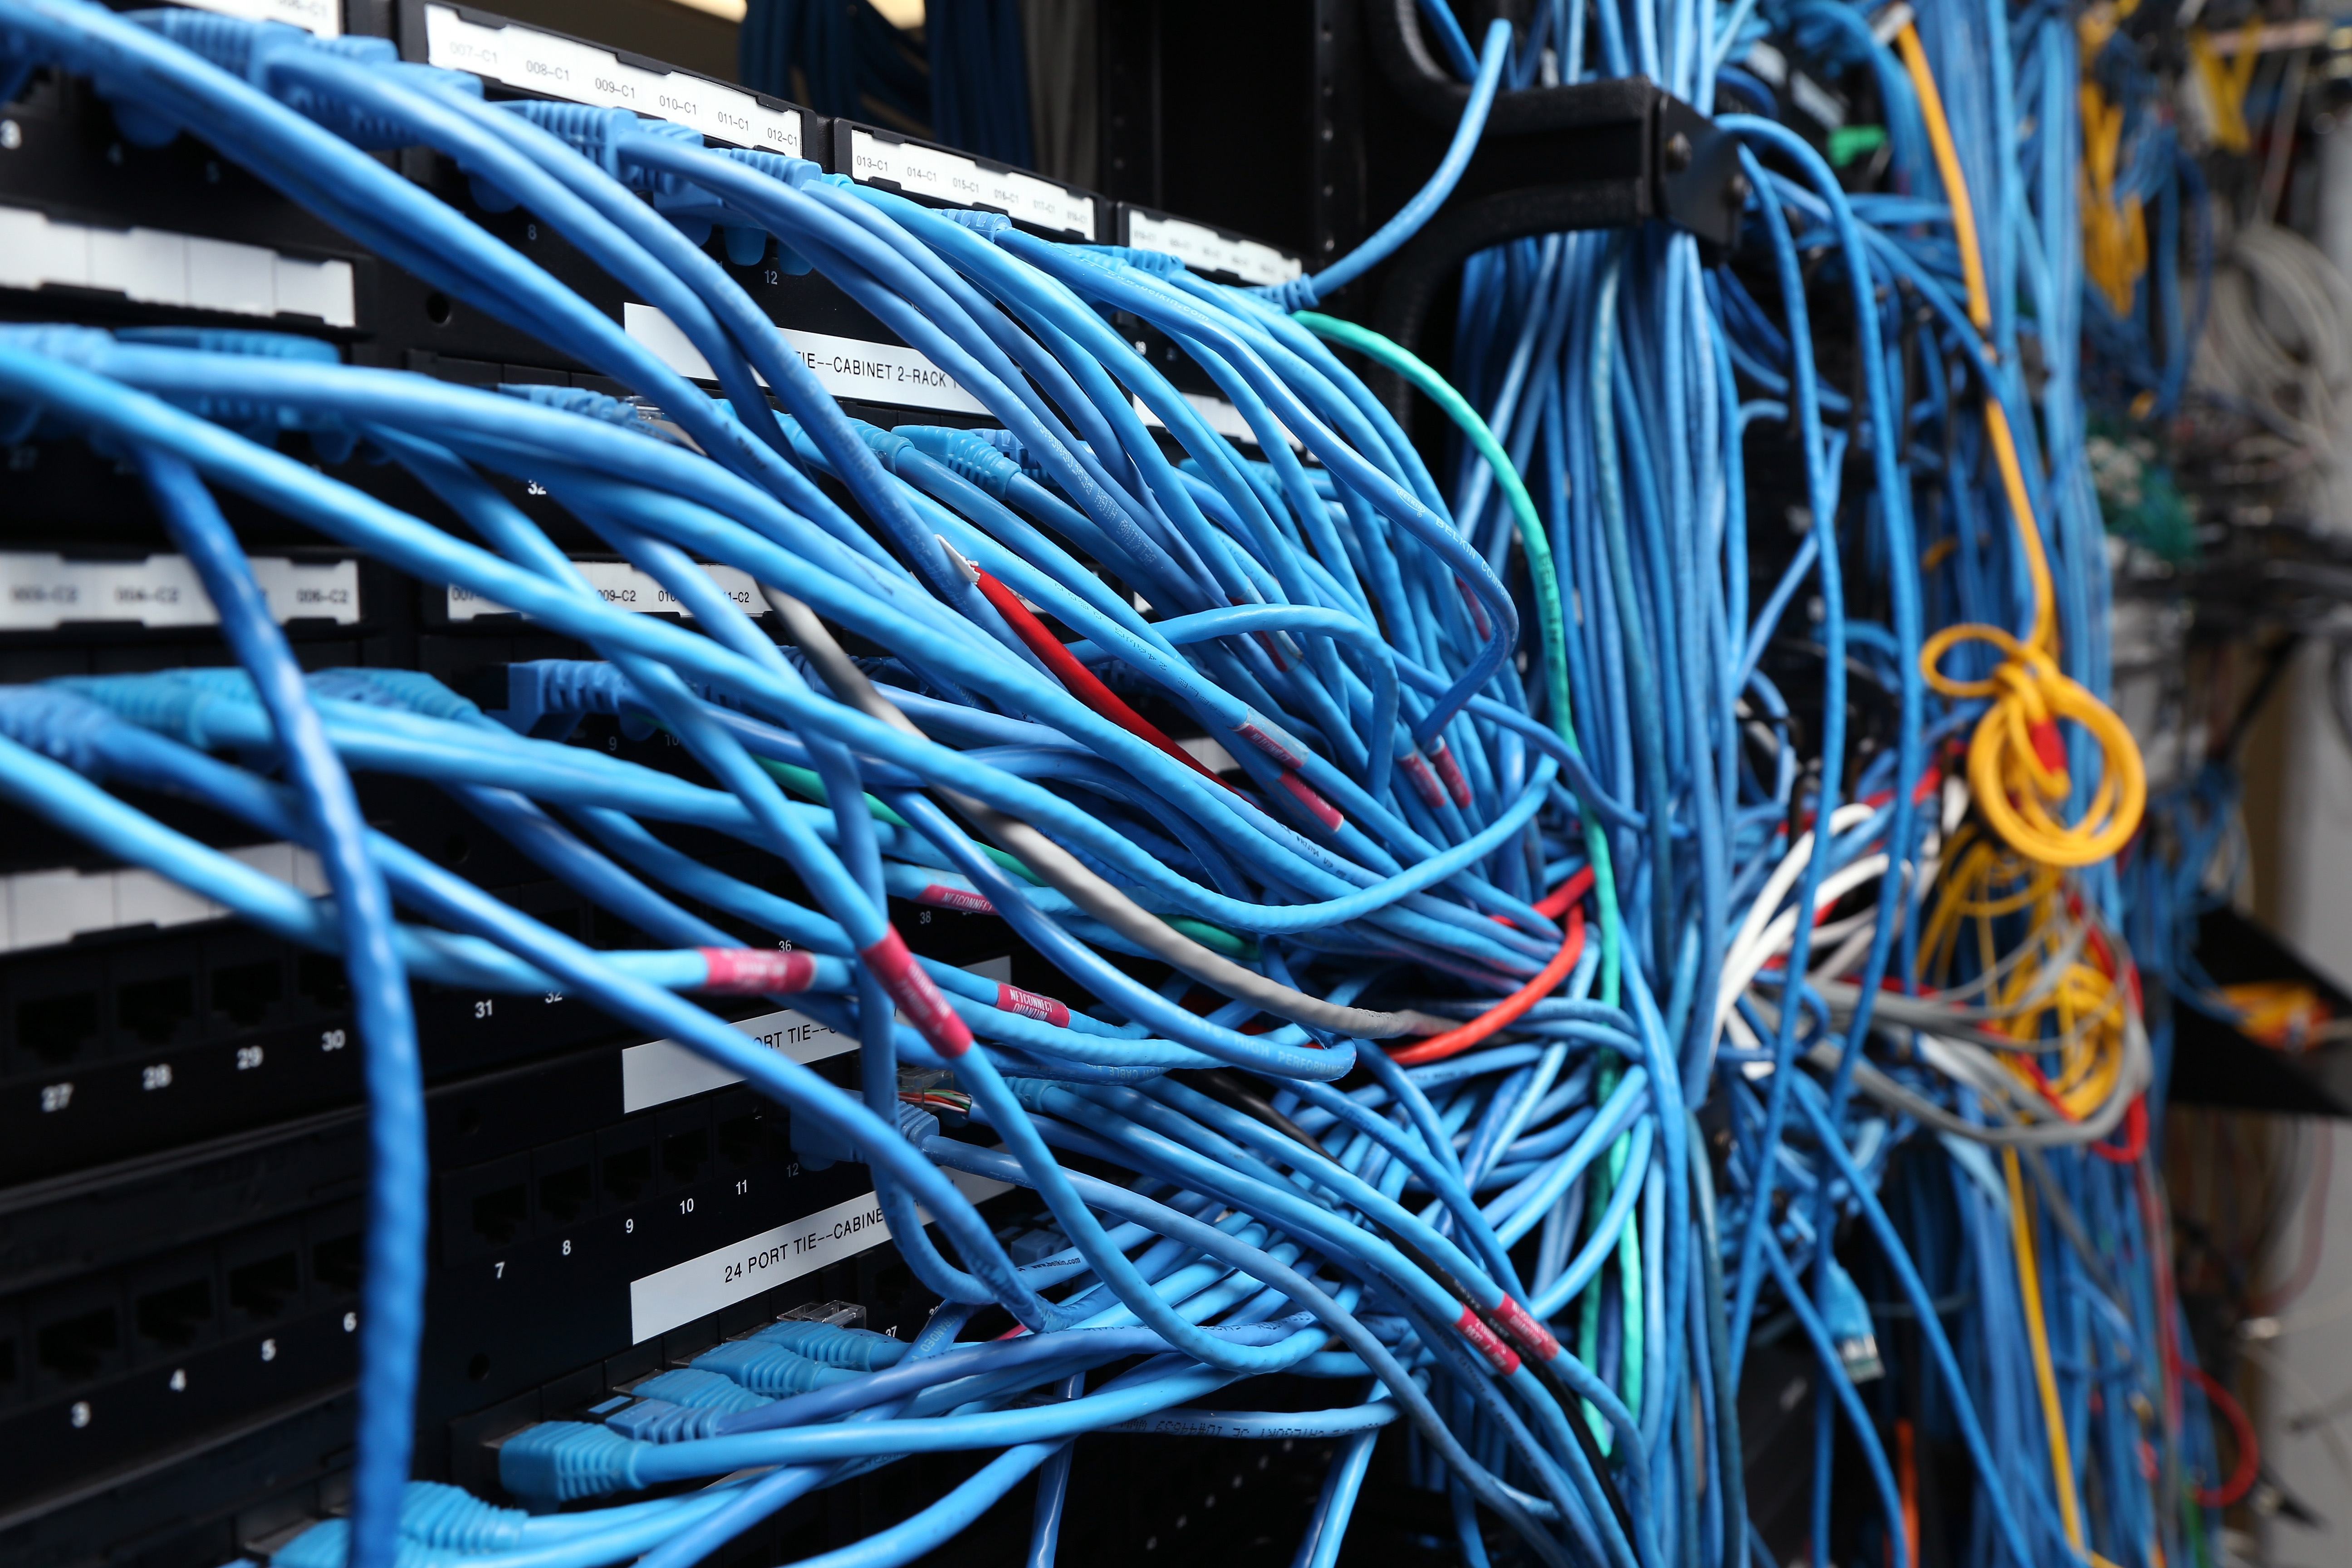 Network%20cables%20server%20room%20getty 3